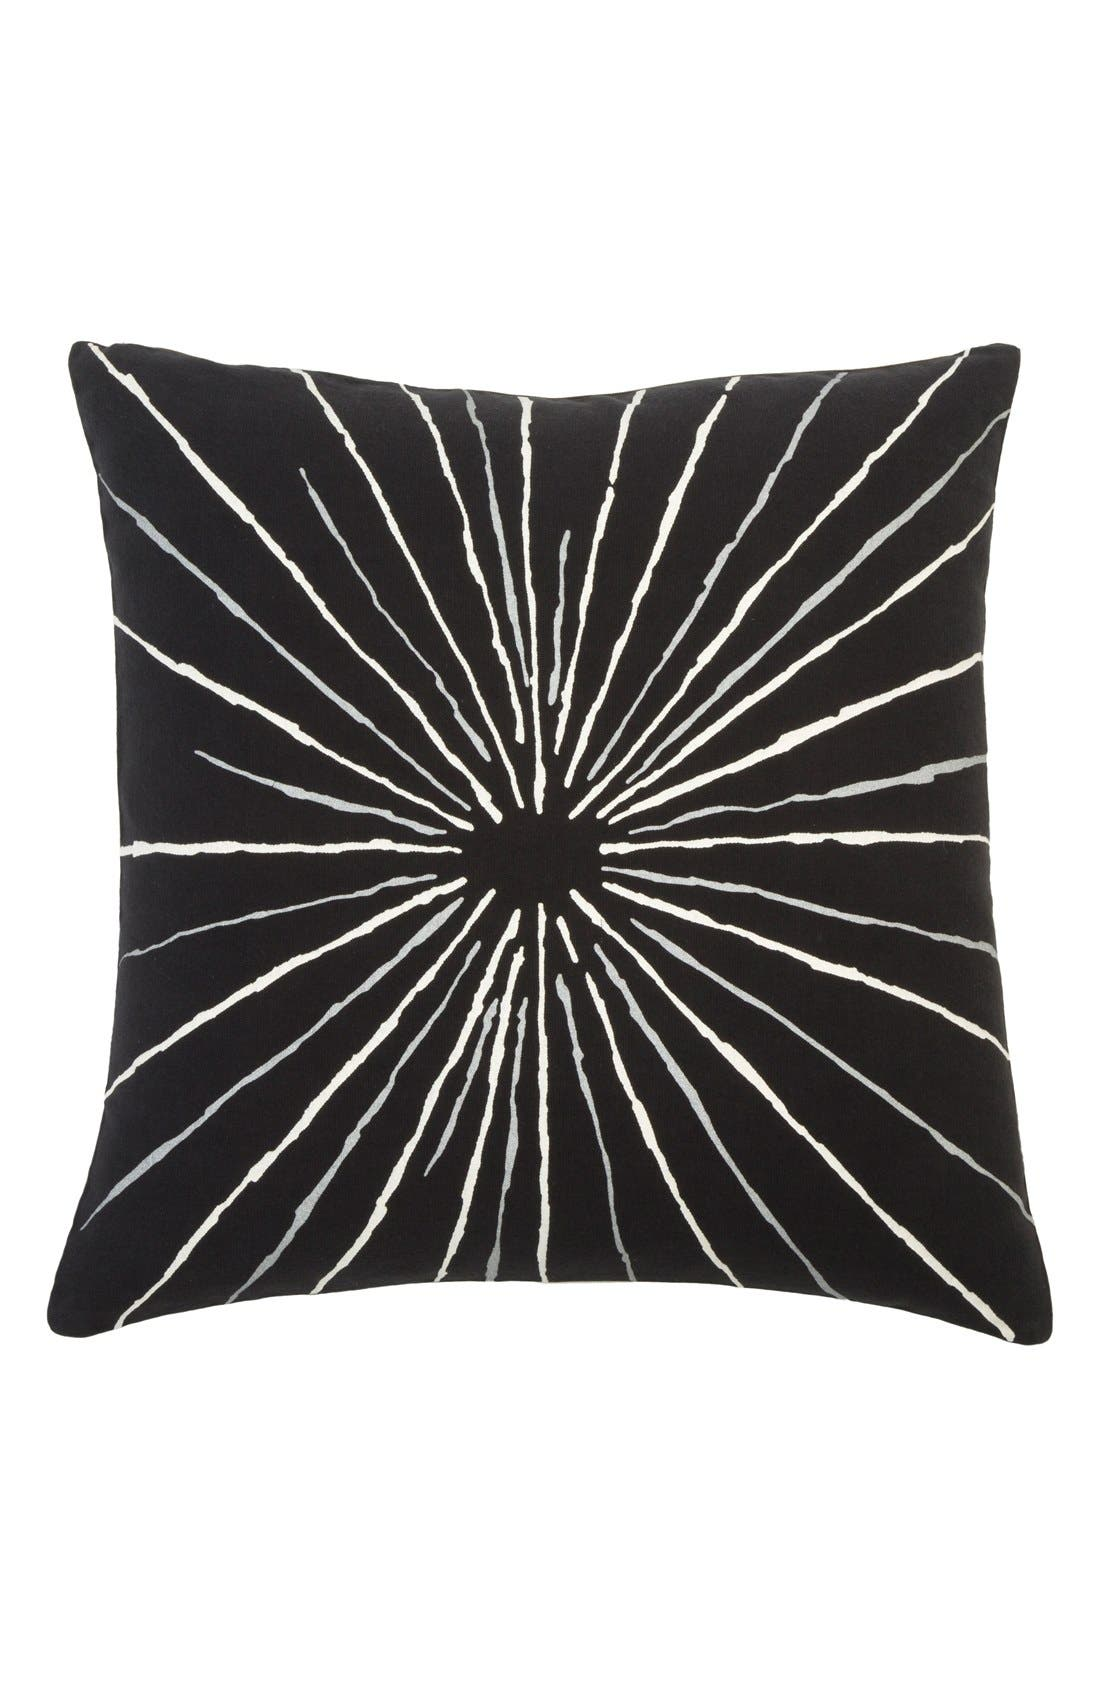 Alternate Image 1 Selected - Kelly Wearstler 'Paragon Kaleidoscope' Pillow